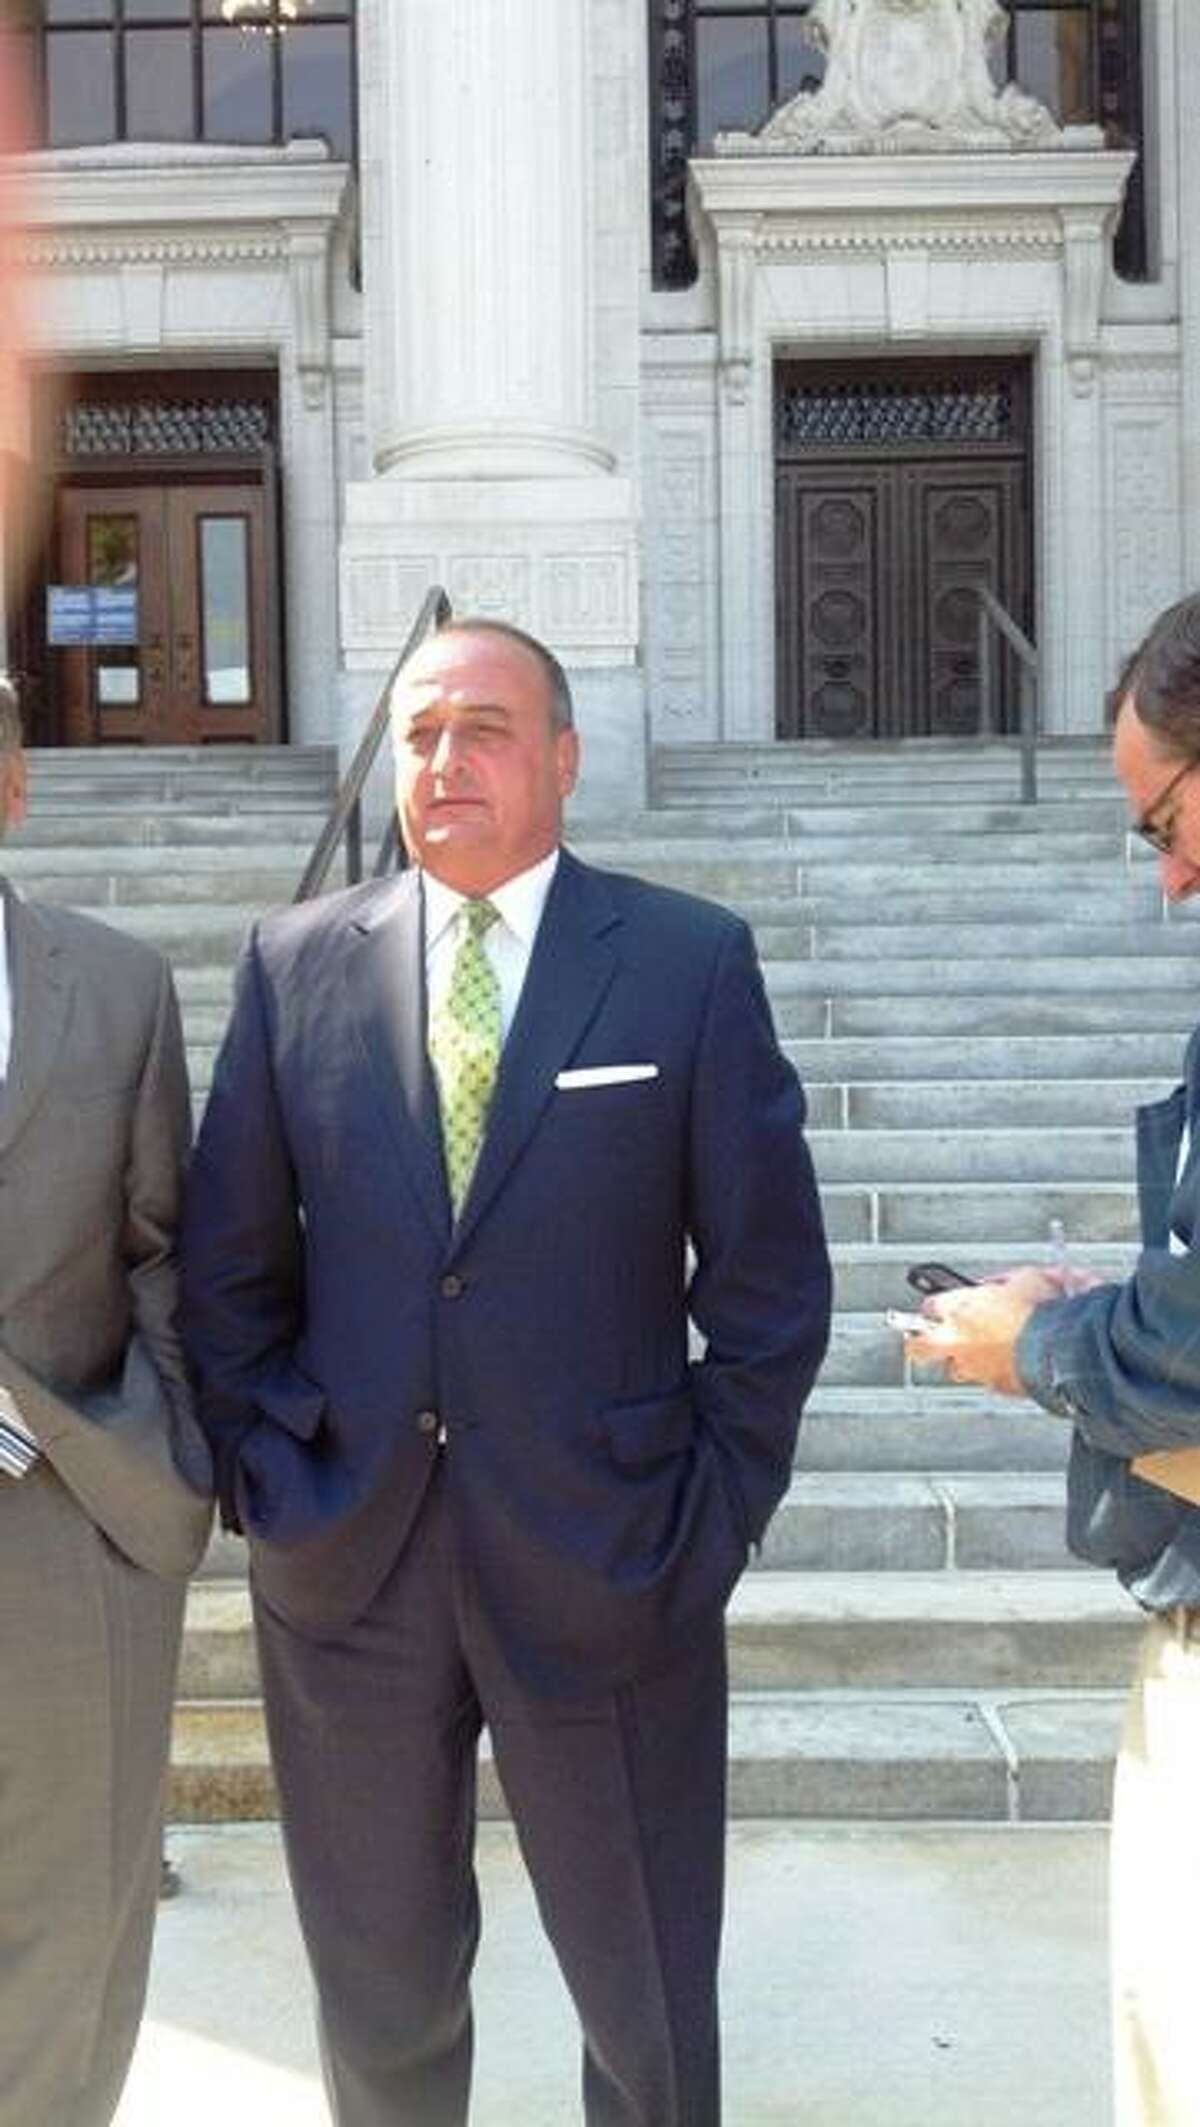 Norwalk's Republican state Rep. Larry Cafero outside the Connecticut Supreme Court building in Hartford photo by Jordan Fenster